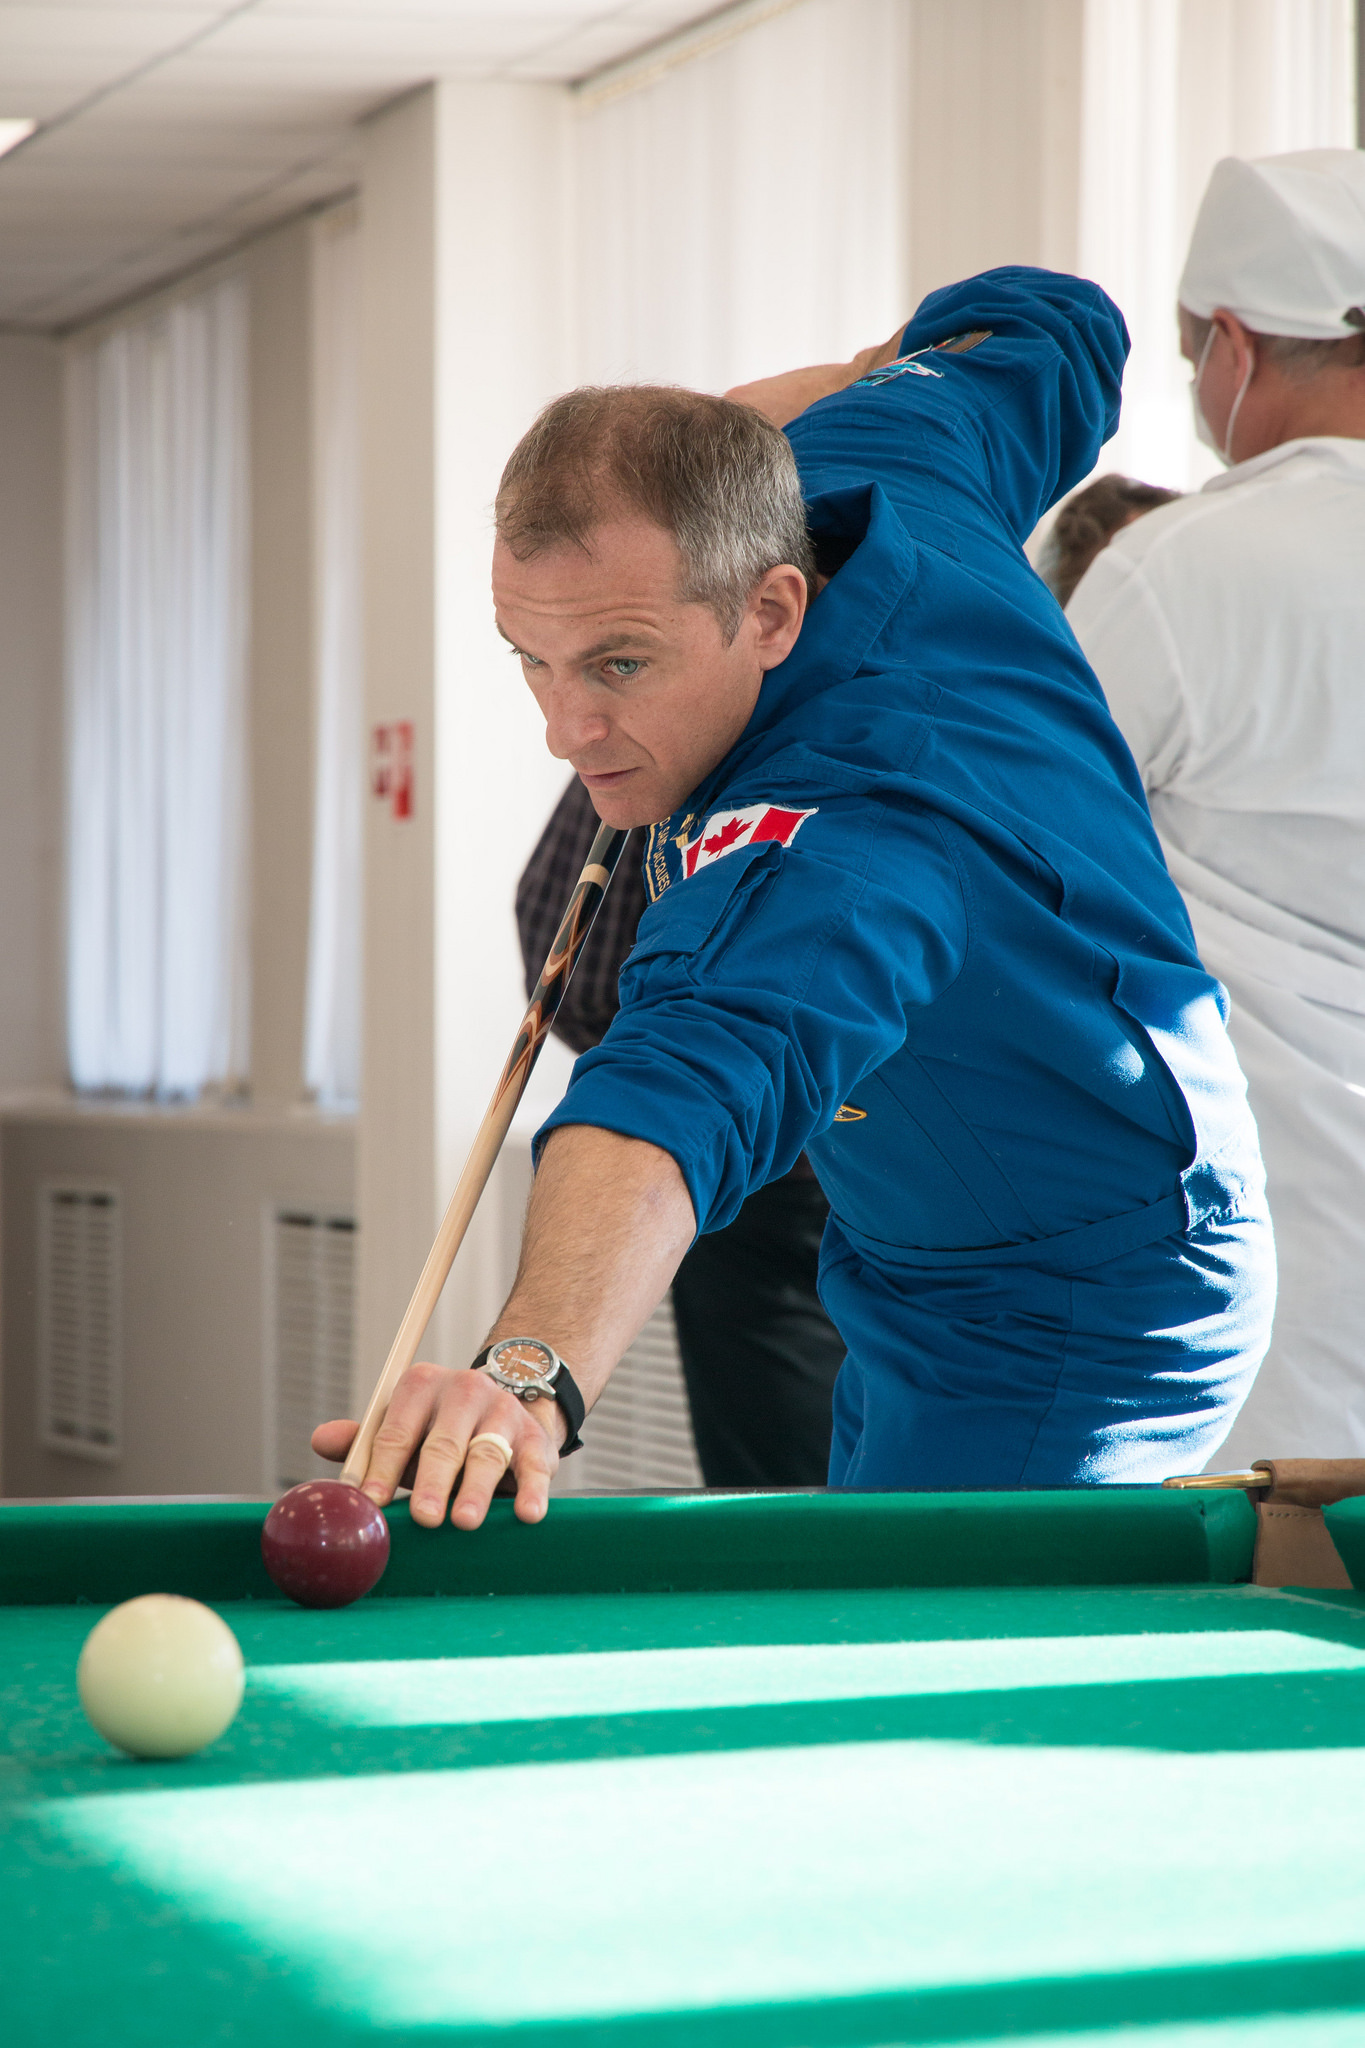 Expedition 58 crew member David Saint-Jacques plays billiards